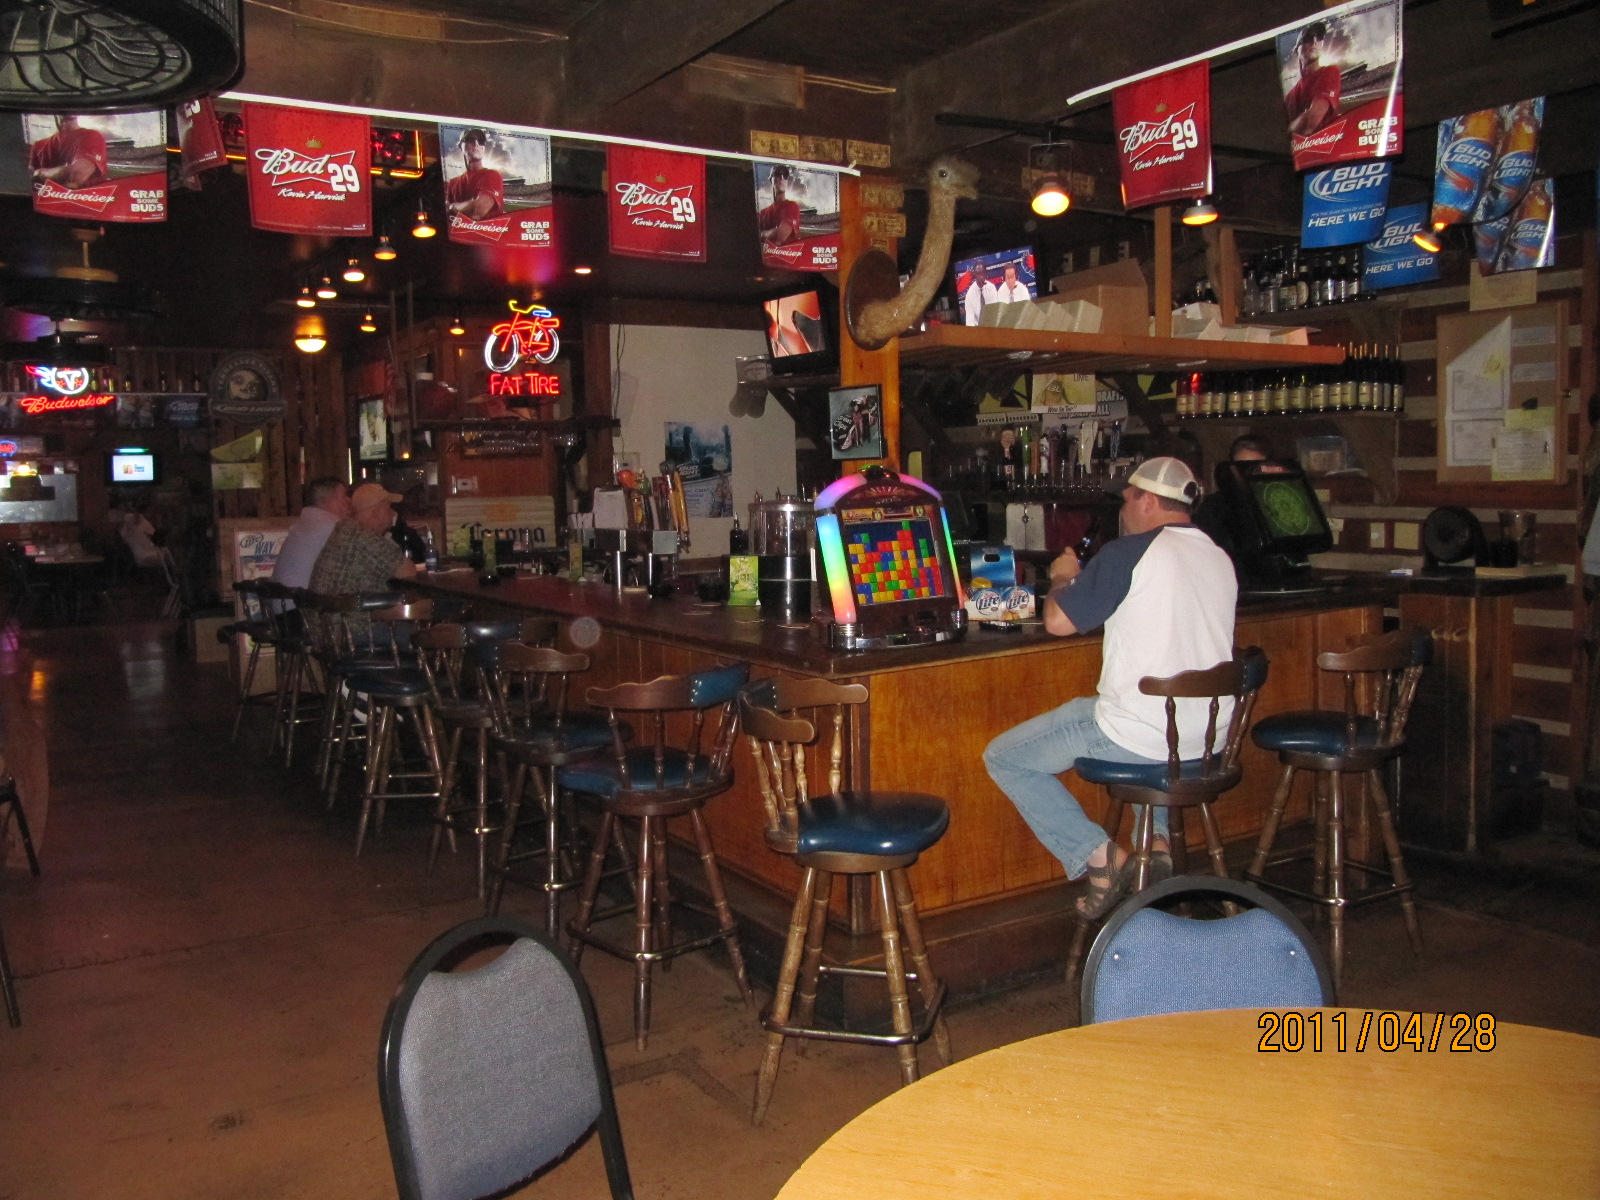 Jeeps Pubs Taverns And Bars Scoreboard Bar And Grill